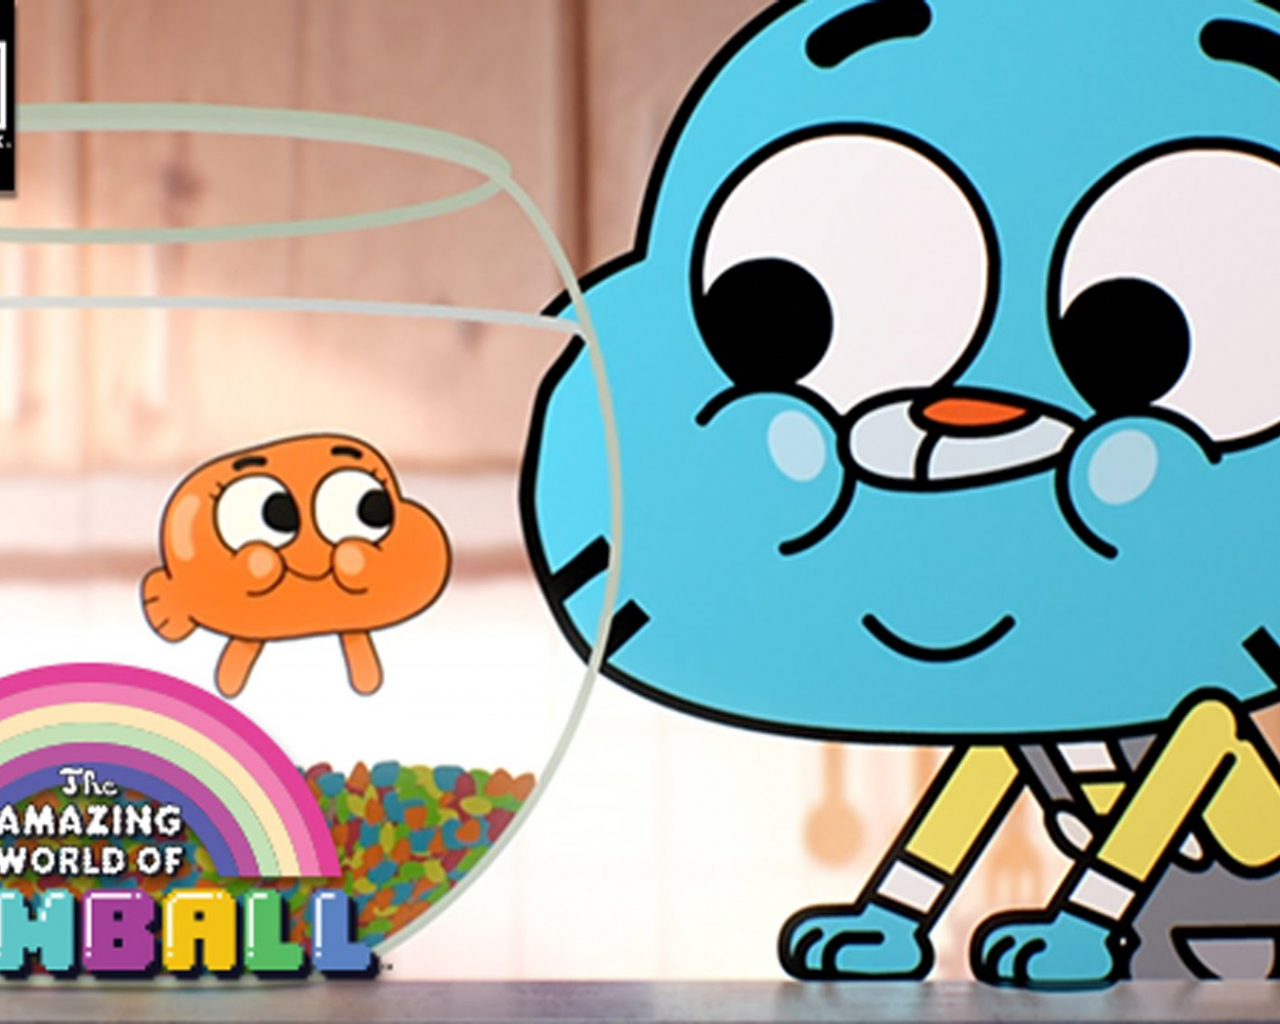 Free Download The Amazing World Of Gumball Wallpaper Image Group